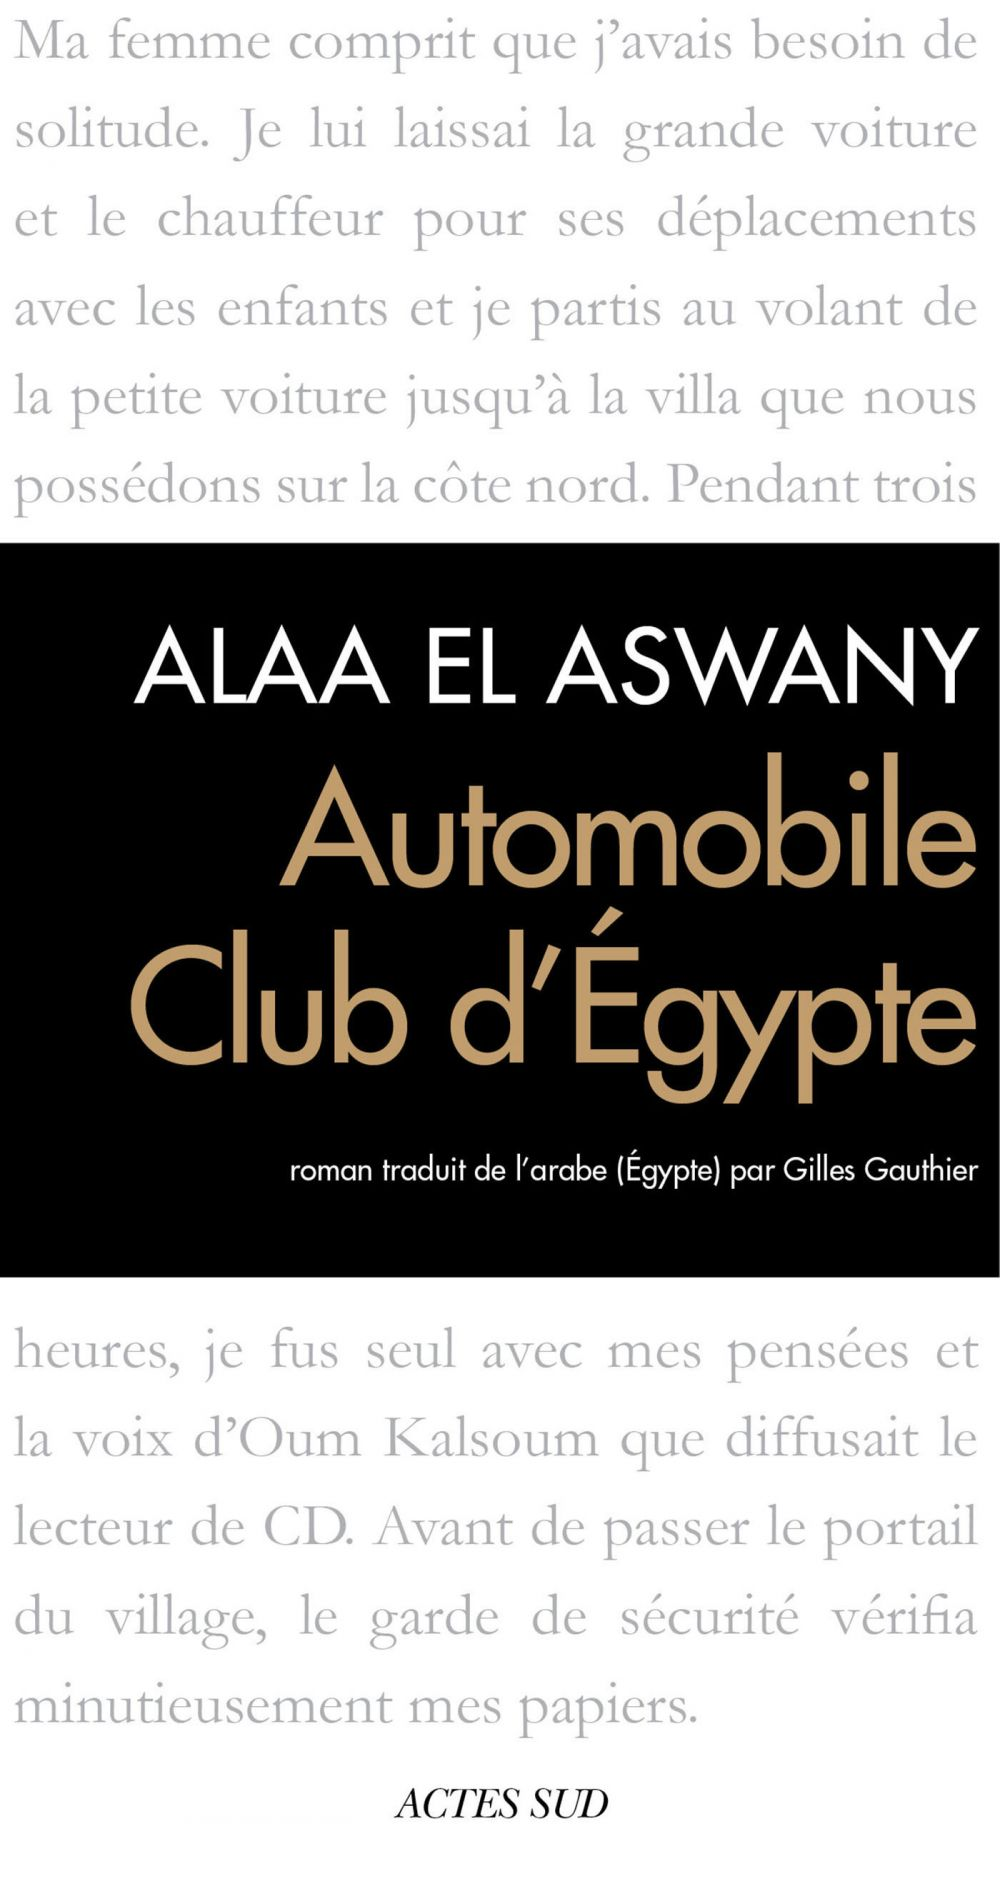 Automobile Club d'Égypte